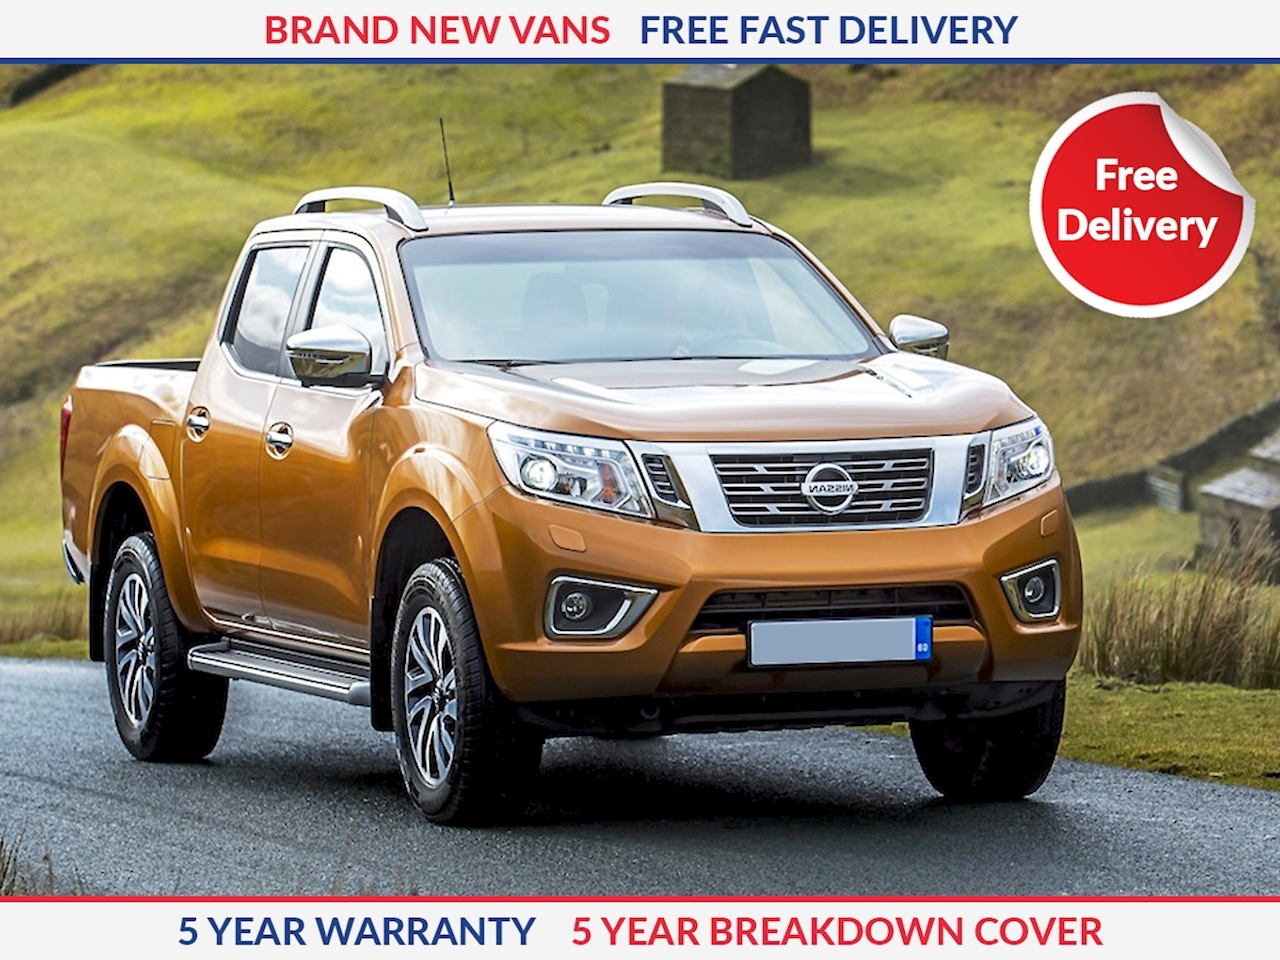 Nissan Navara Acenta+ Double Cab 2.3 dCi Twin Turbo 190ps 4WD 4x4 Manual